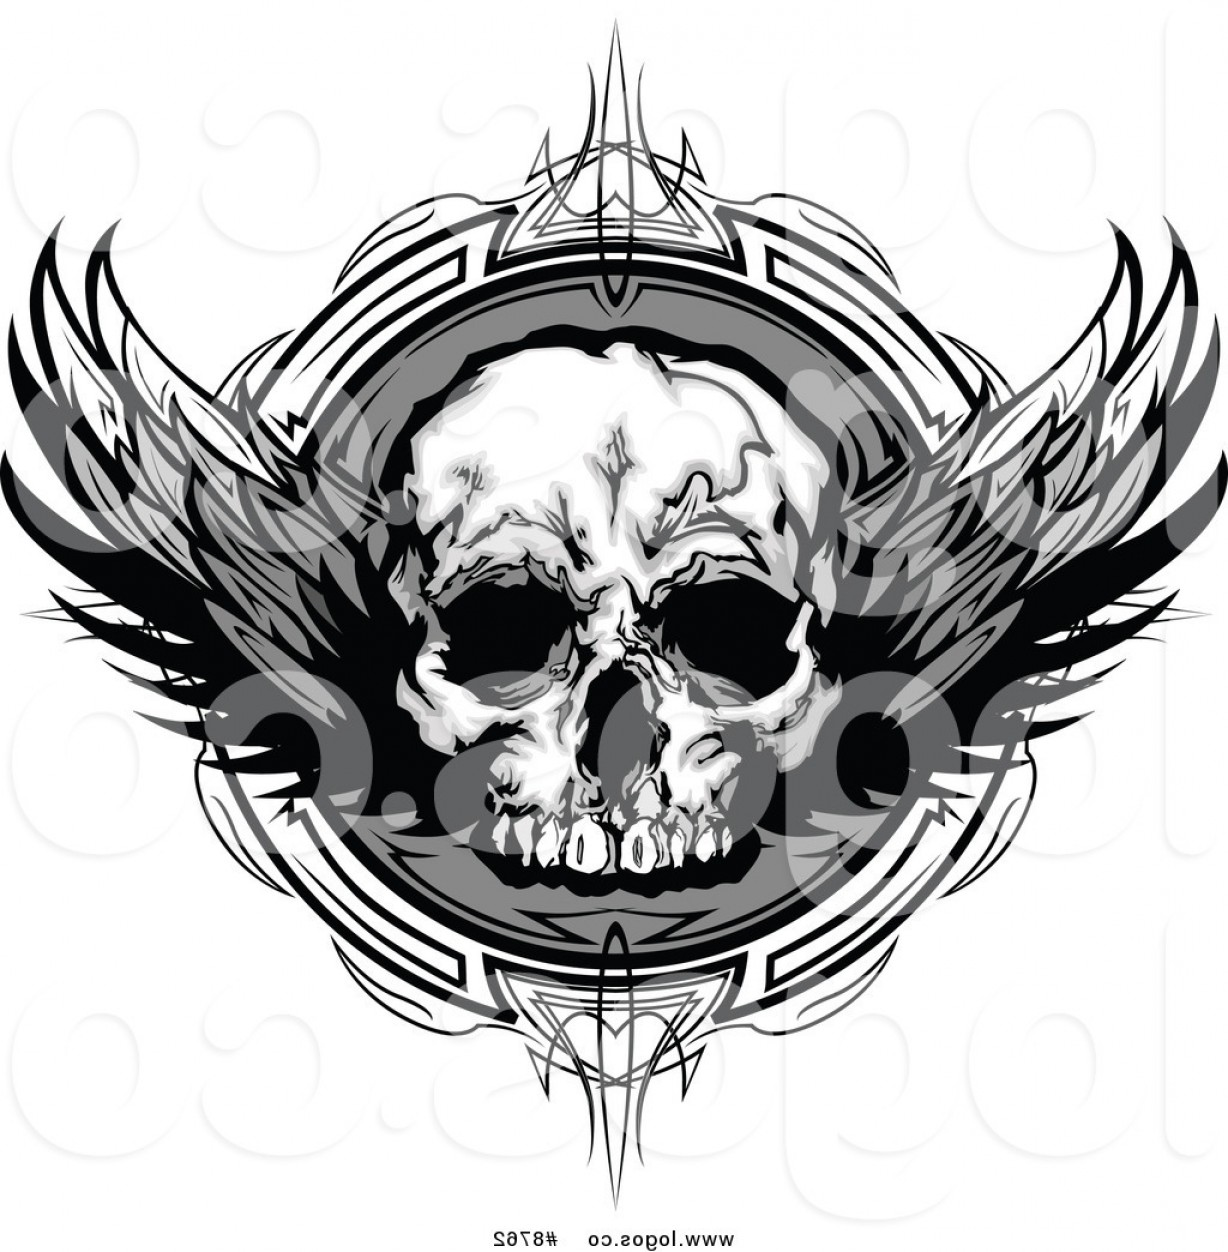 Eye Tribal Skull Vector: Royalty Free Clip Art Vector Grayscale Winged Skull Over An Ornate Circle Logo By Chromaco